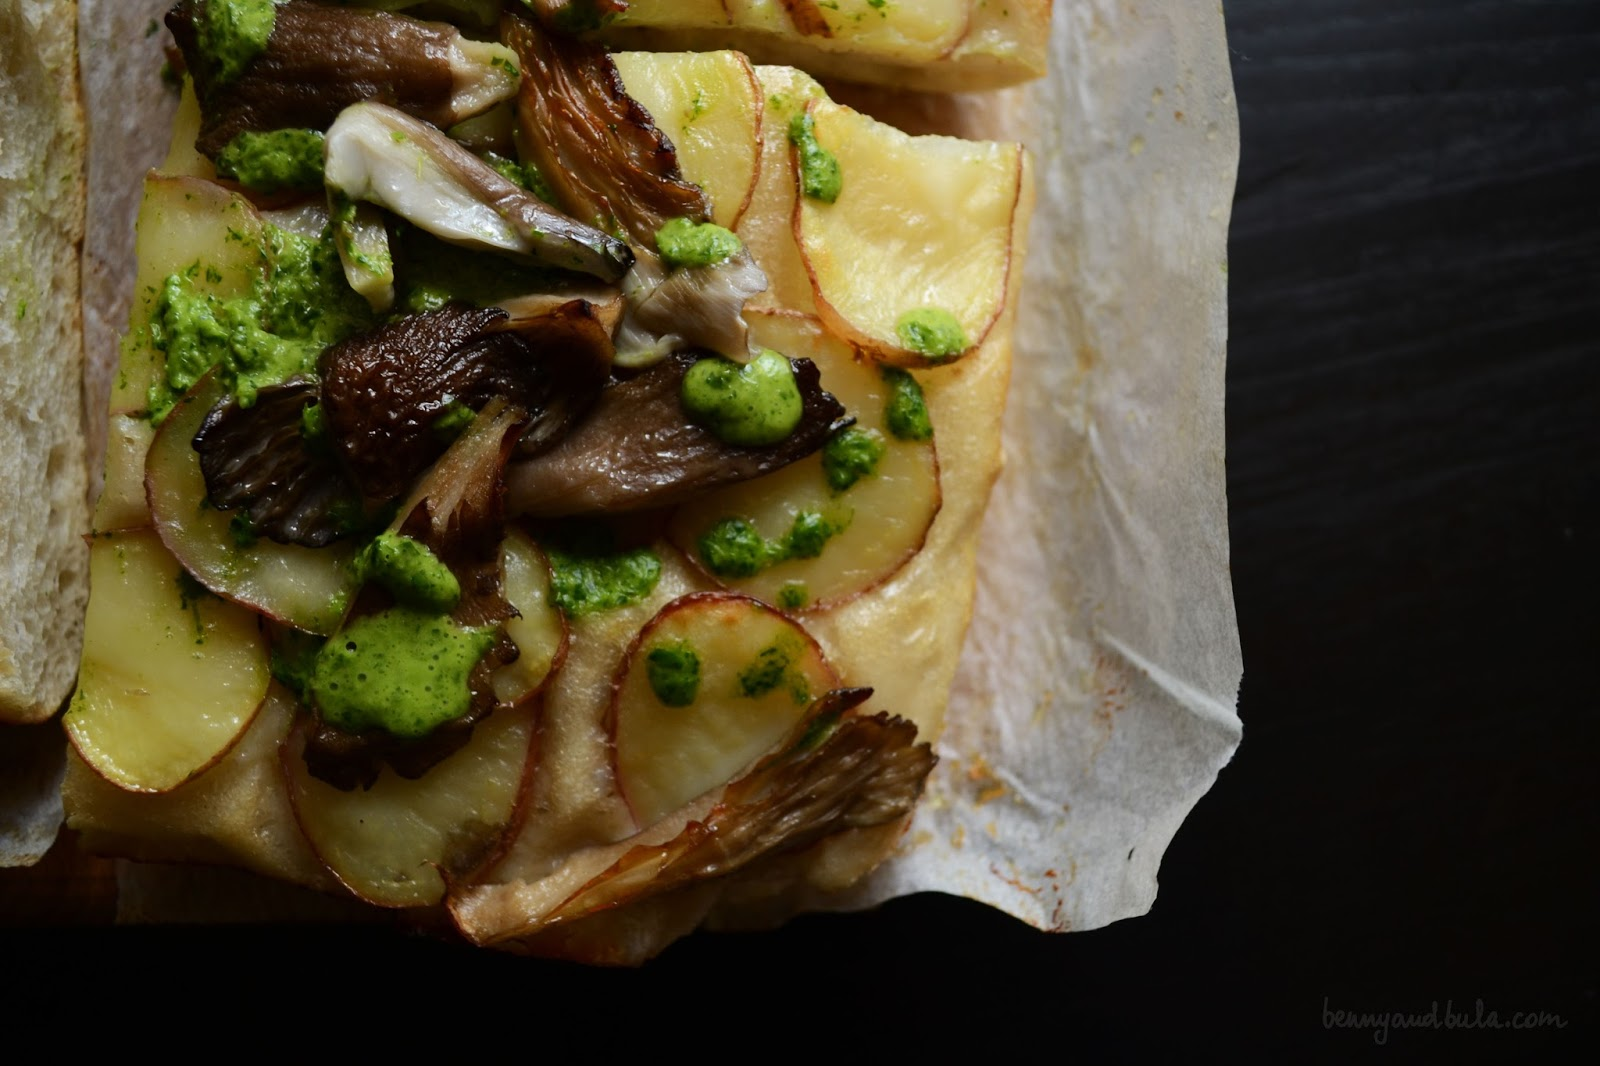 ricetta focaccia patate funghi/ mushrooms potatoes pizza recipe